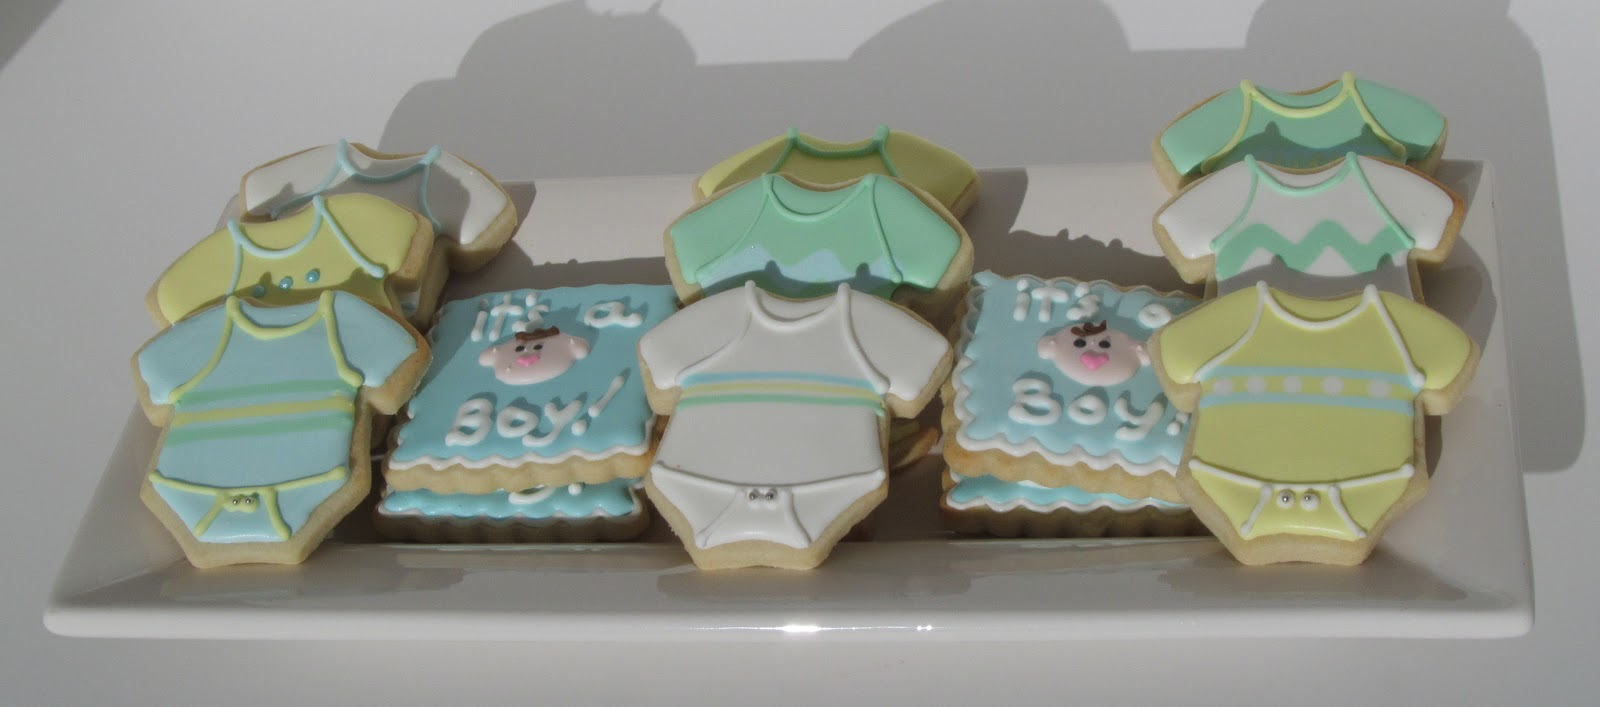 The Adventures Of 2 Amis Baking Its A Boy Baby Shower Cookies